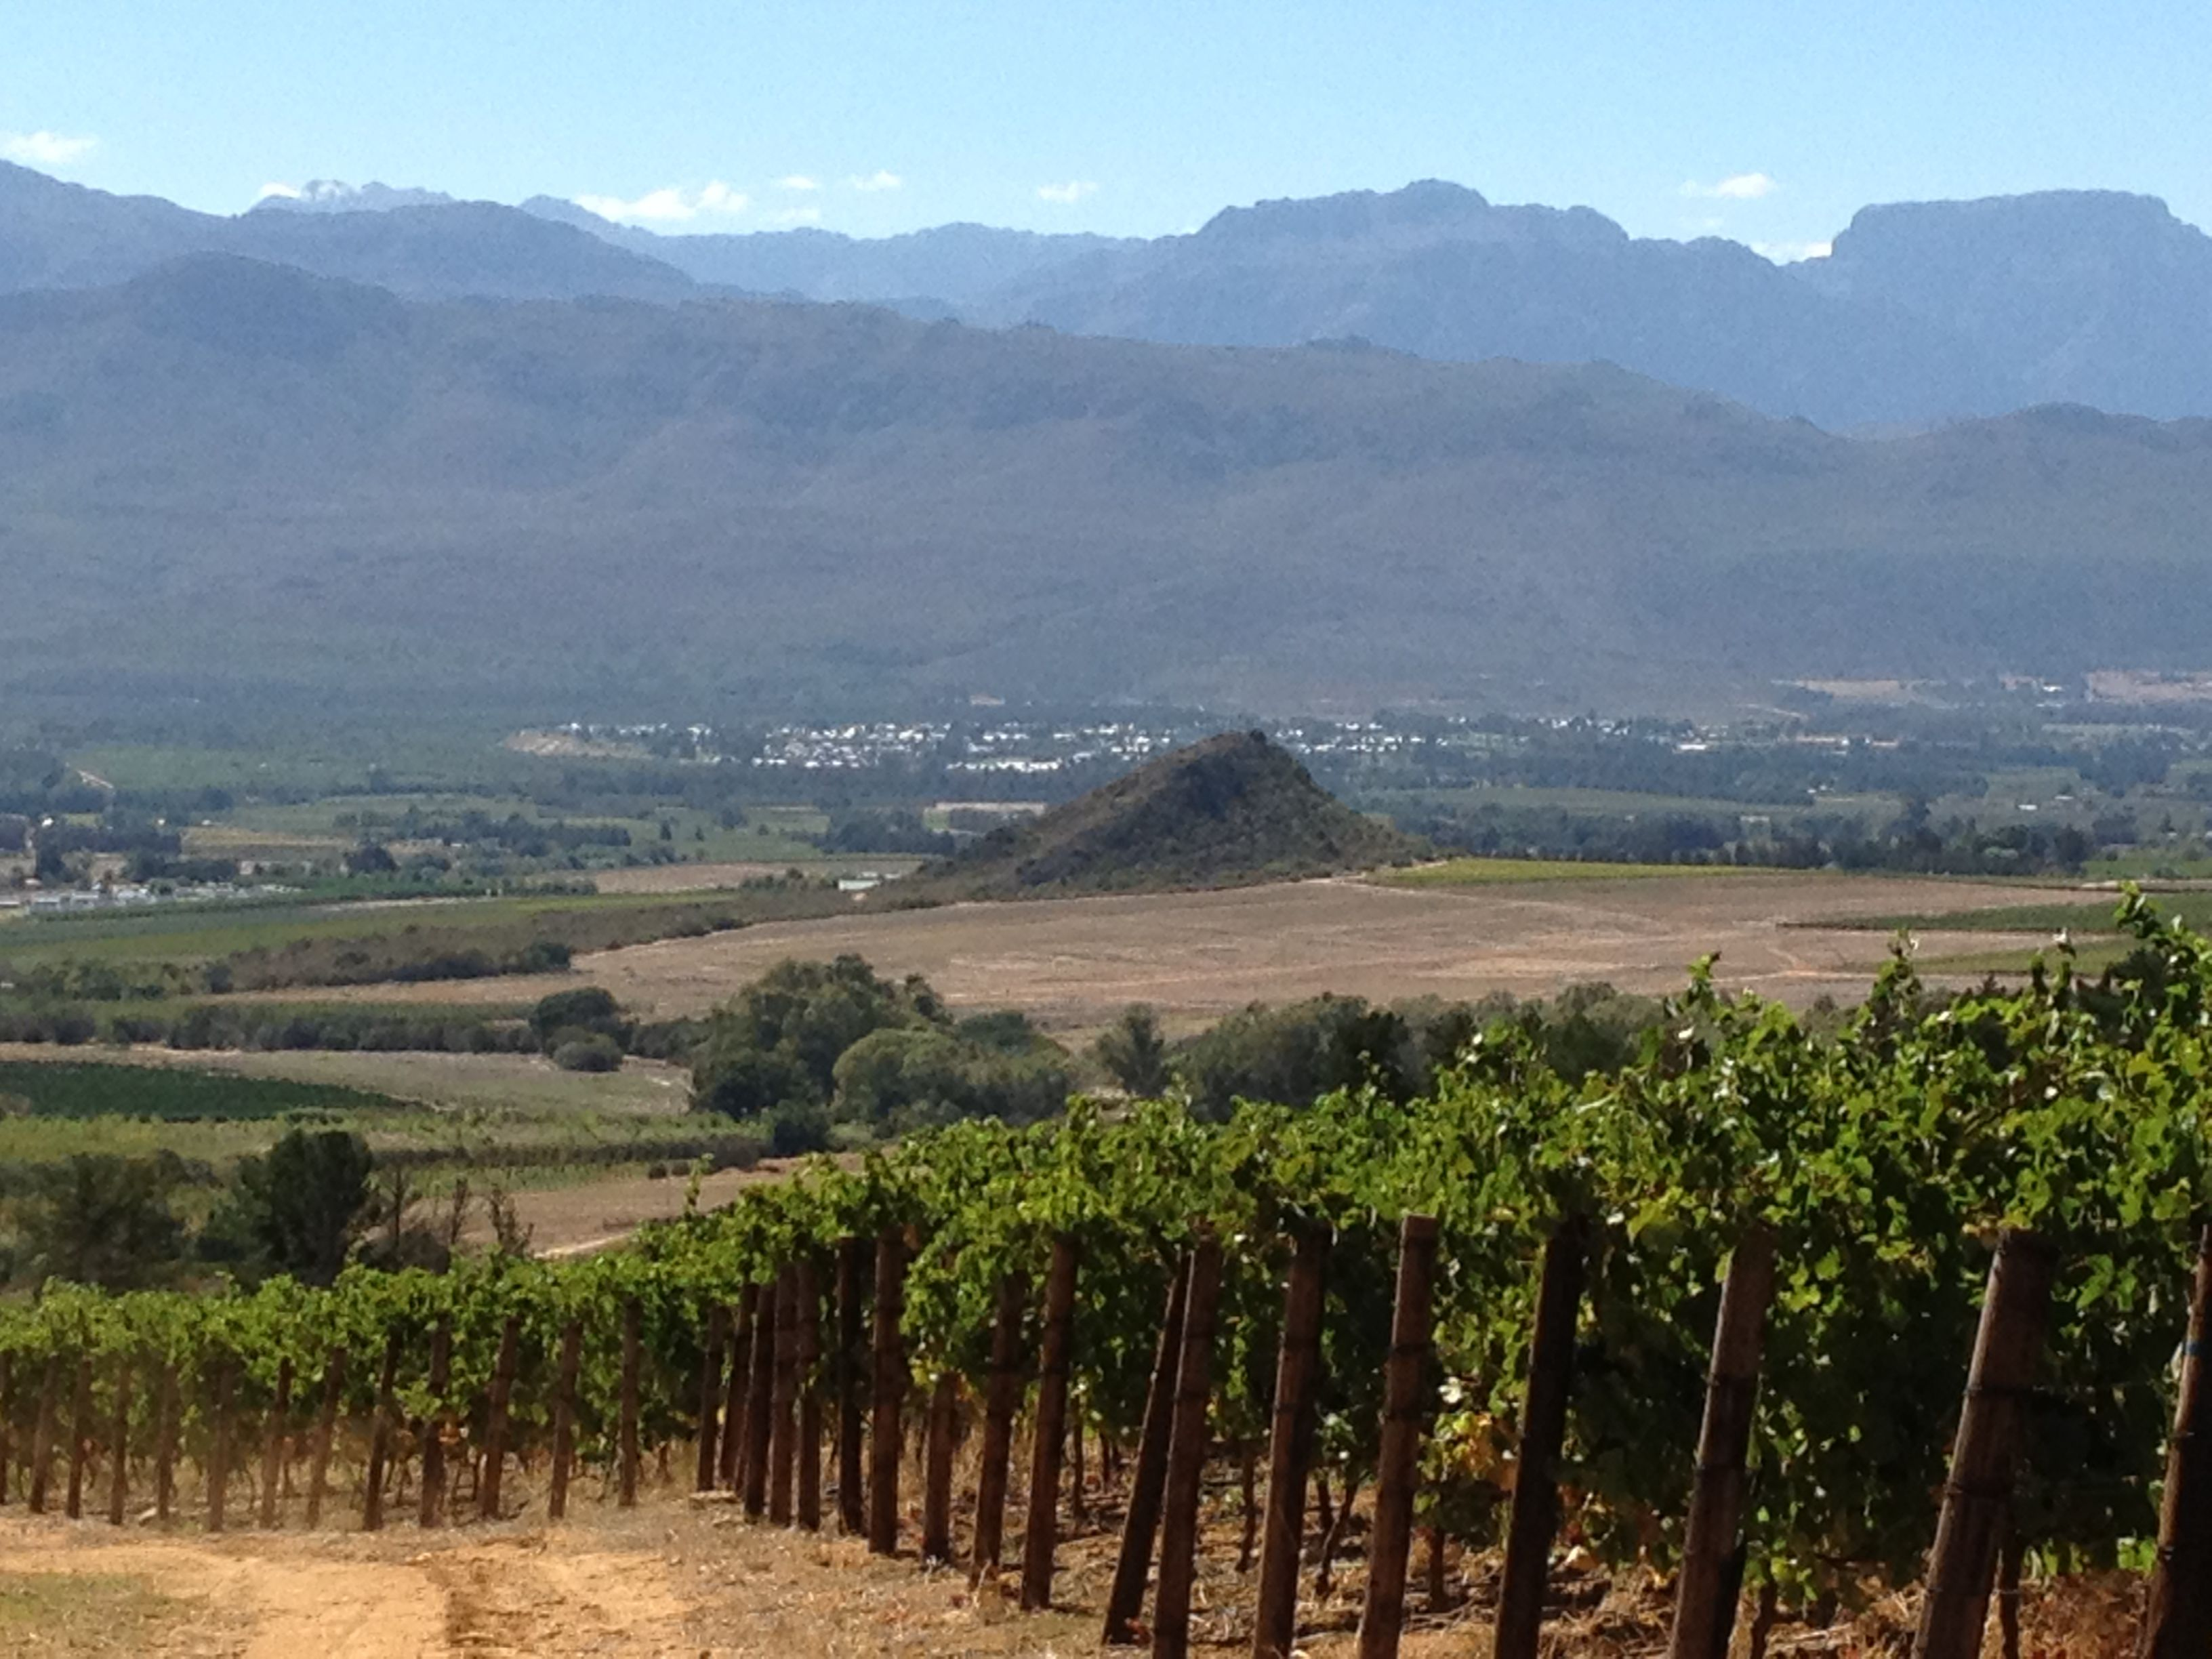 """Mountains surrounding Paarl in the Western Cape. Reminds me of the lyrics of """"in the arms of an angel, you will find comfort there""""!"""